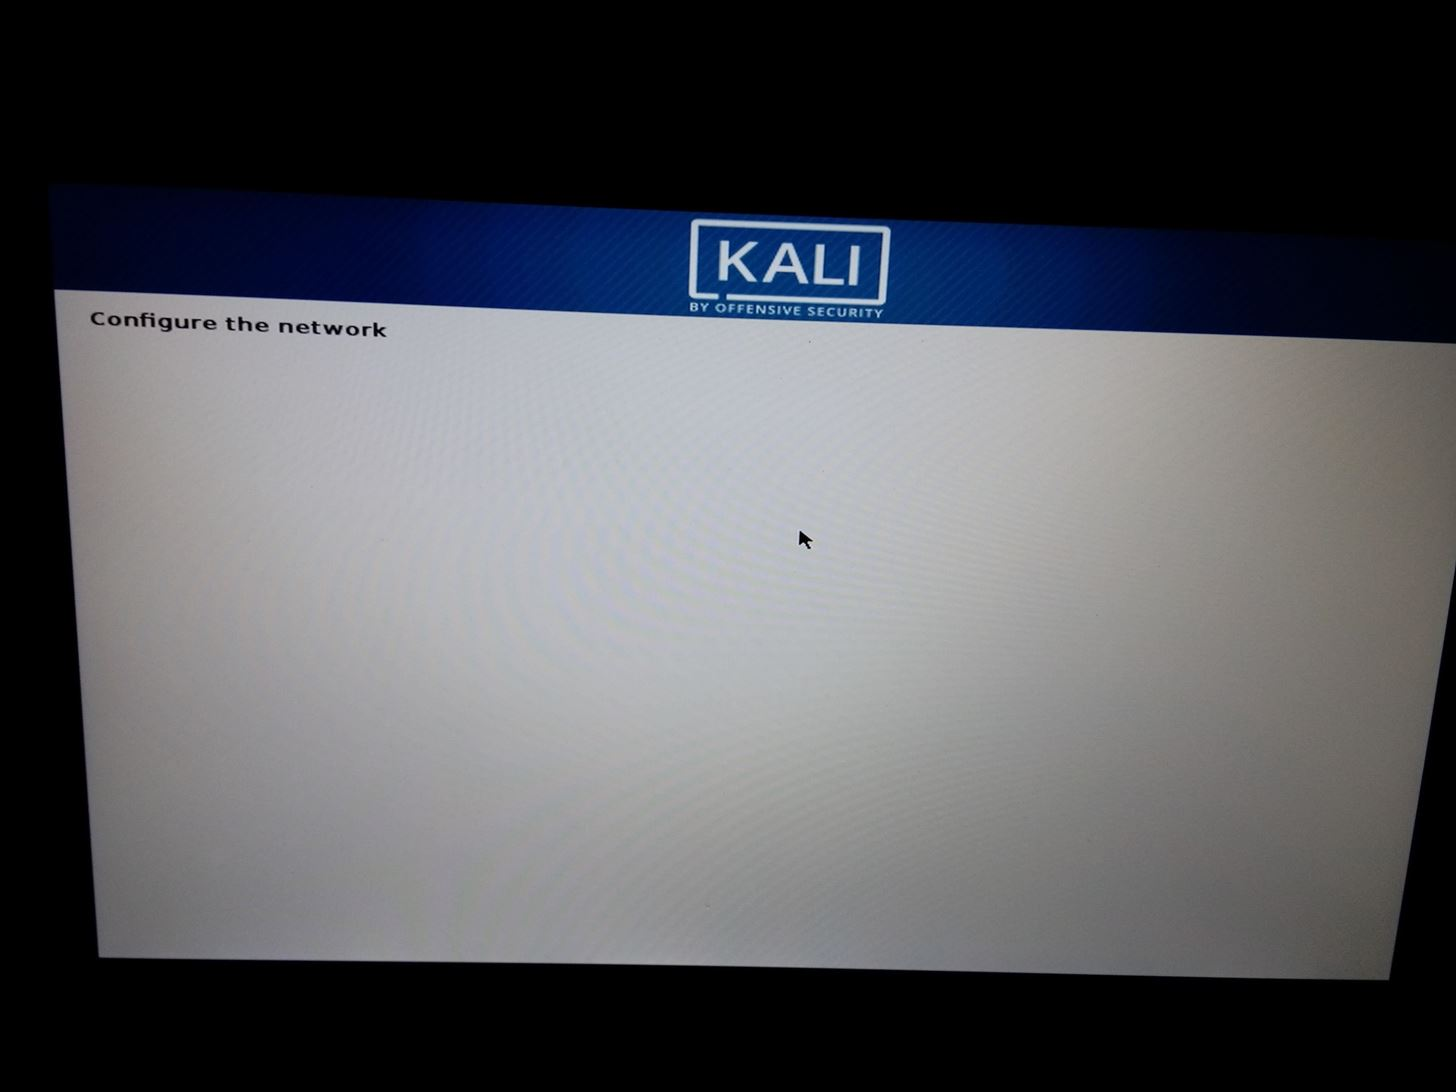 Installing Kali Stuck at Configure the Network